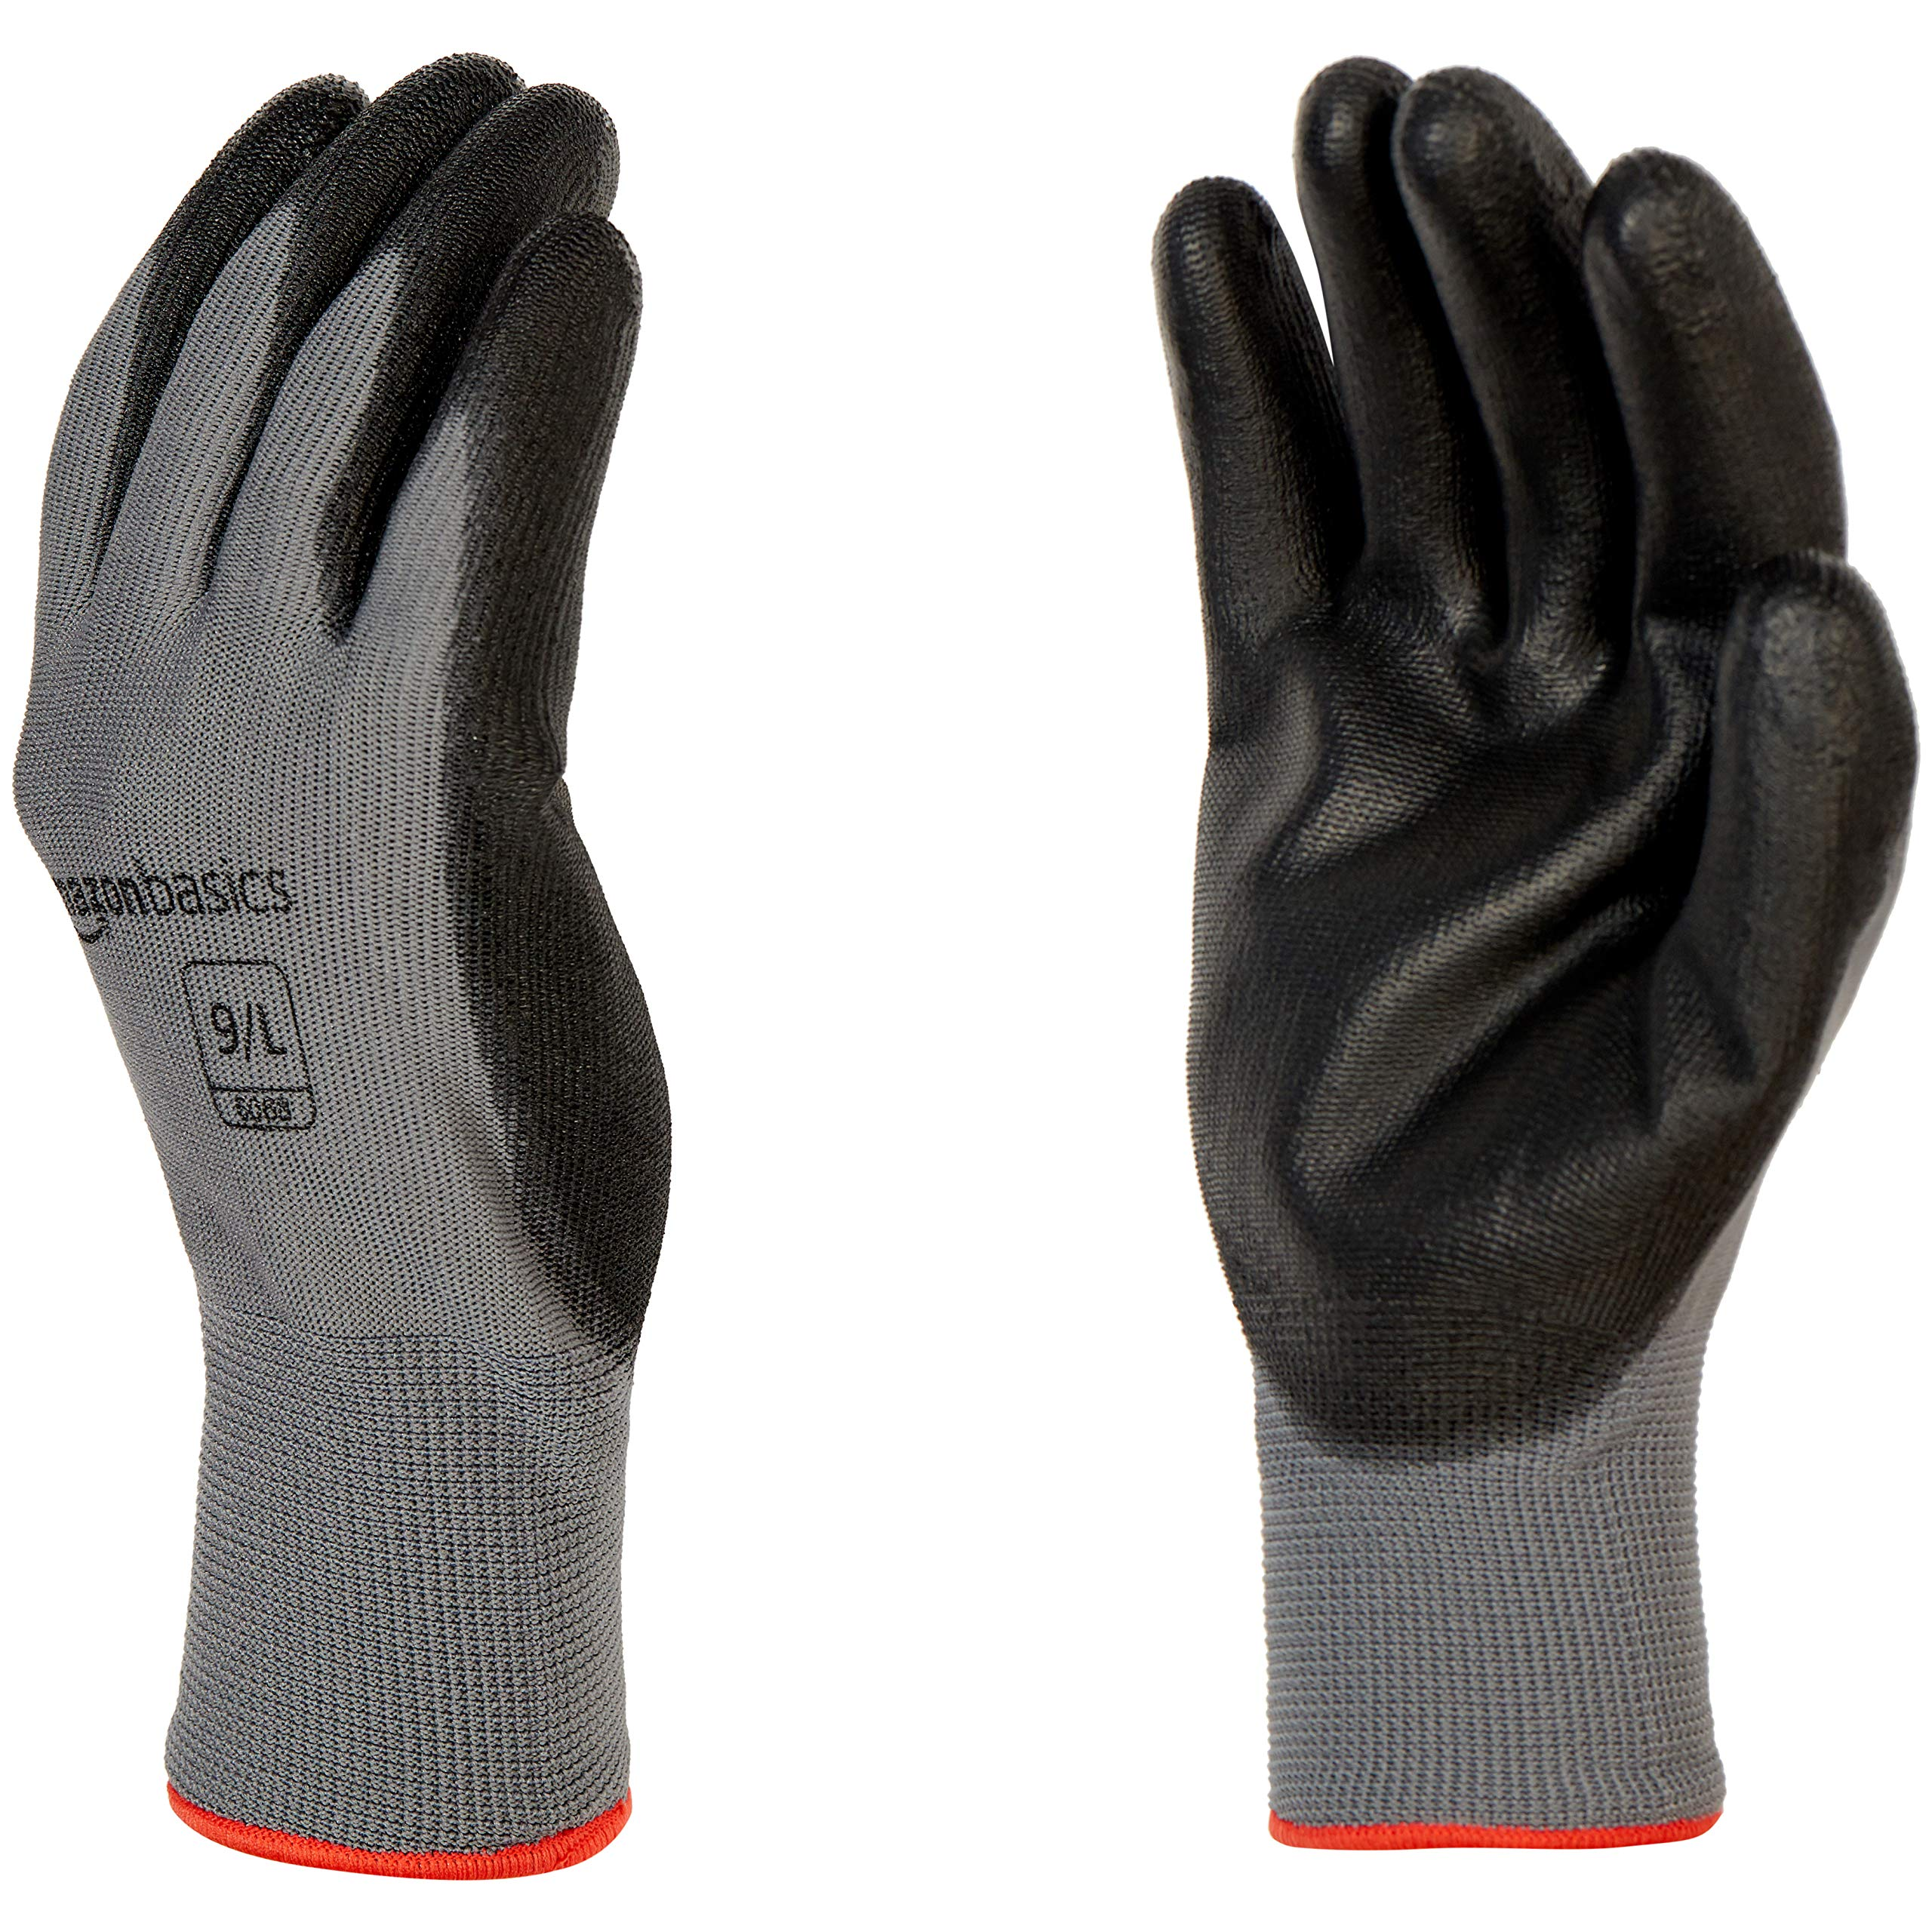 Amazon Basics Polyurethane Coated Work Gloves, Polyester Liner Fiber, Touch Screen, Grey, Size 9, L, 12-Pair